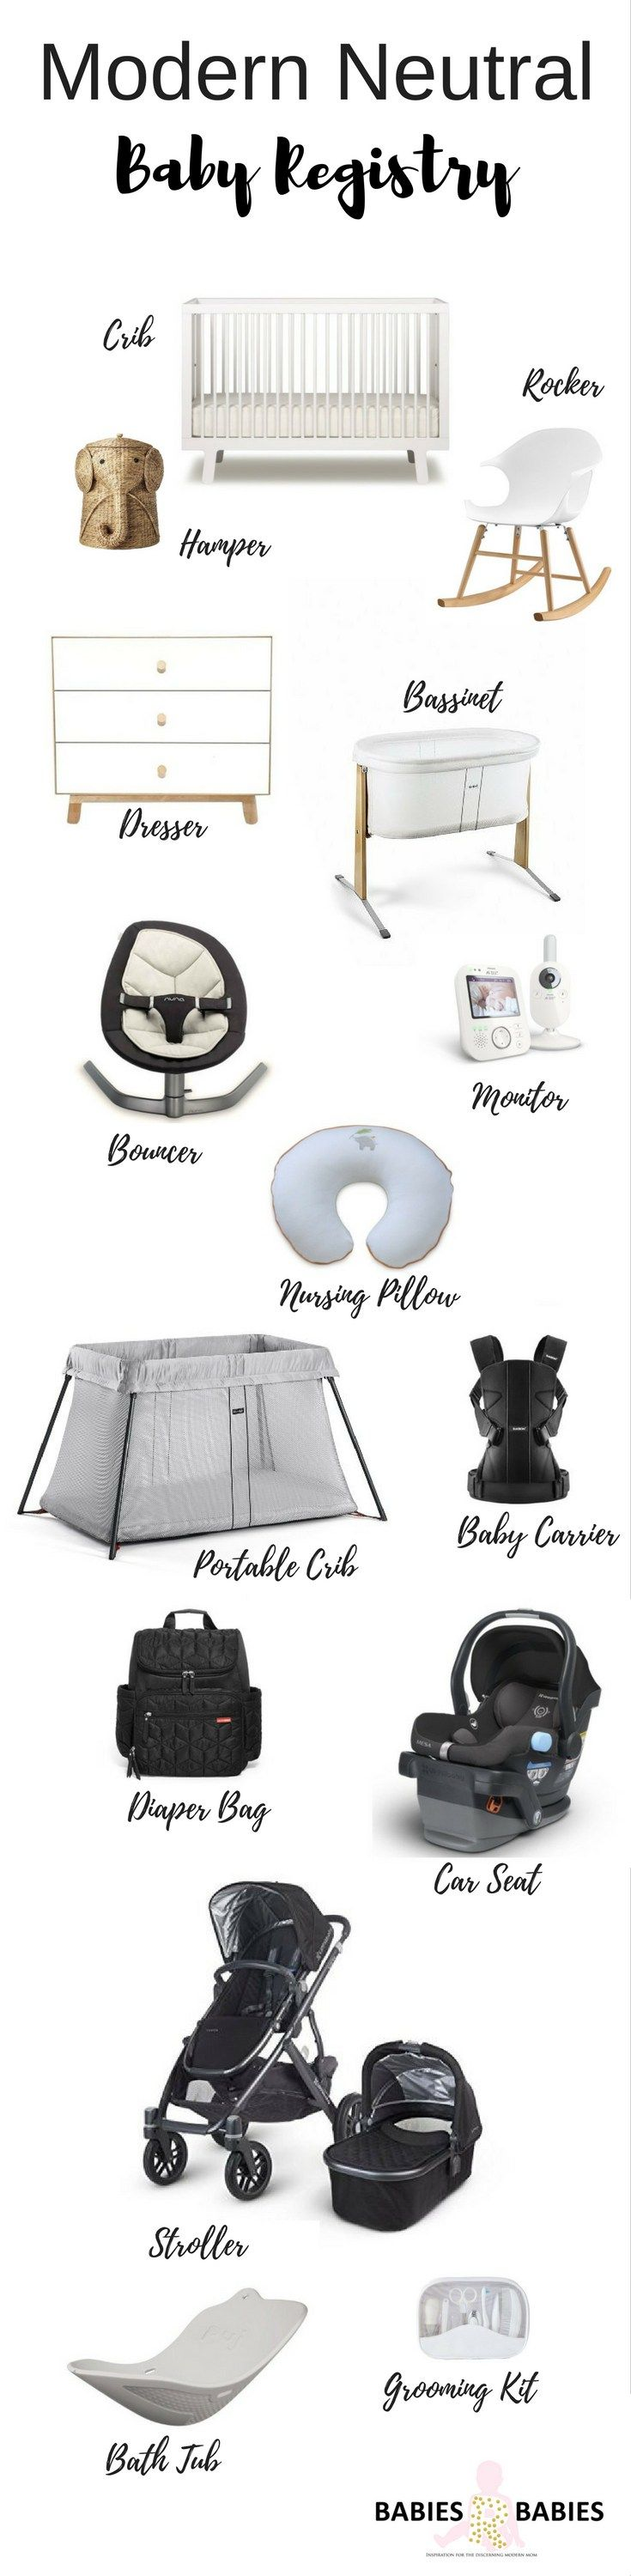 This baby checklist includes baby registry items you need to create a modern neutral nursery for your baby.